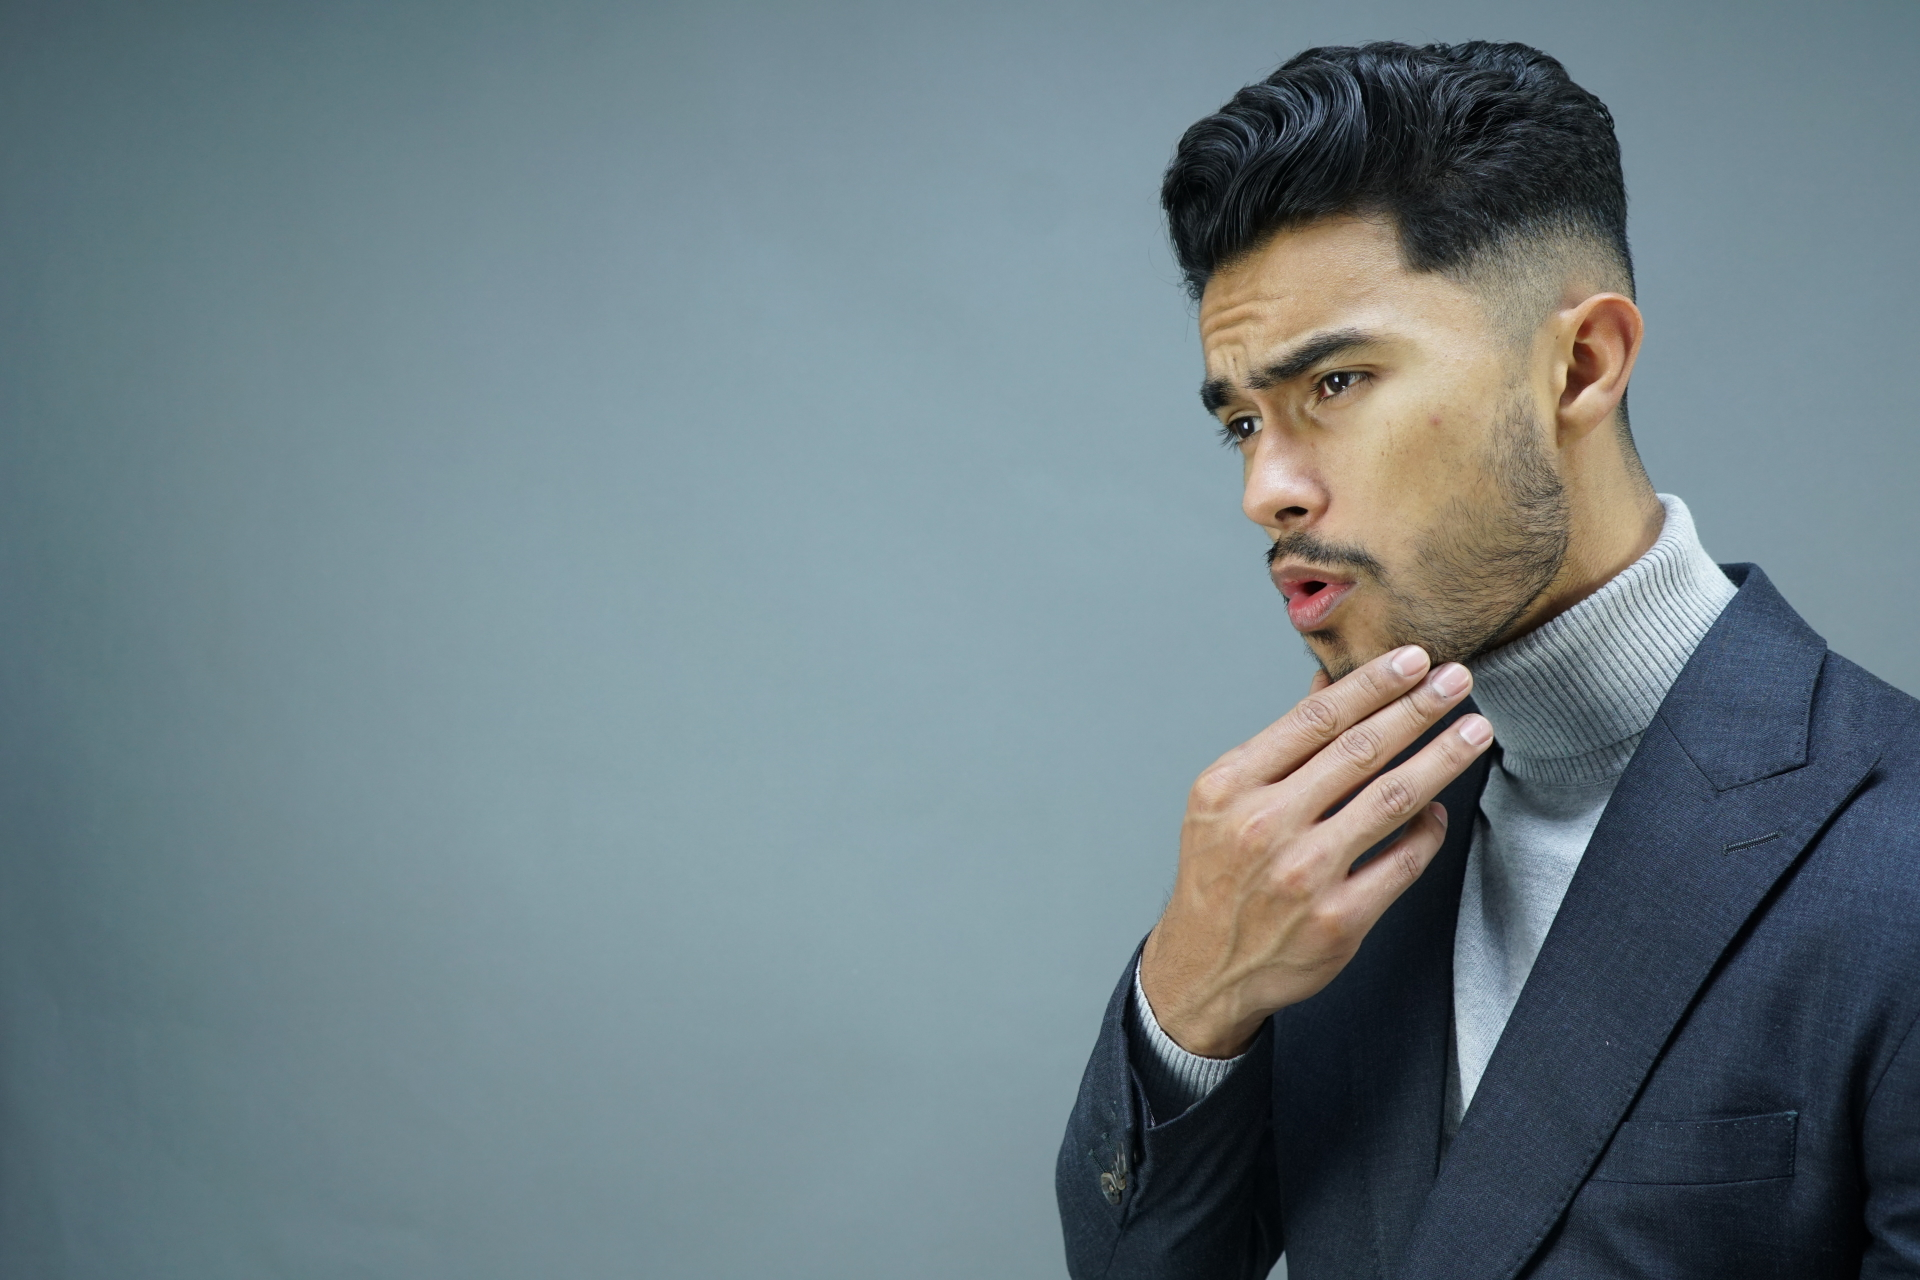 6 Handsome Enhacing Grooming Secrets